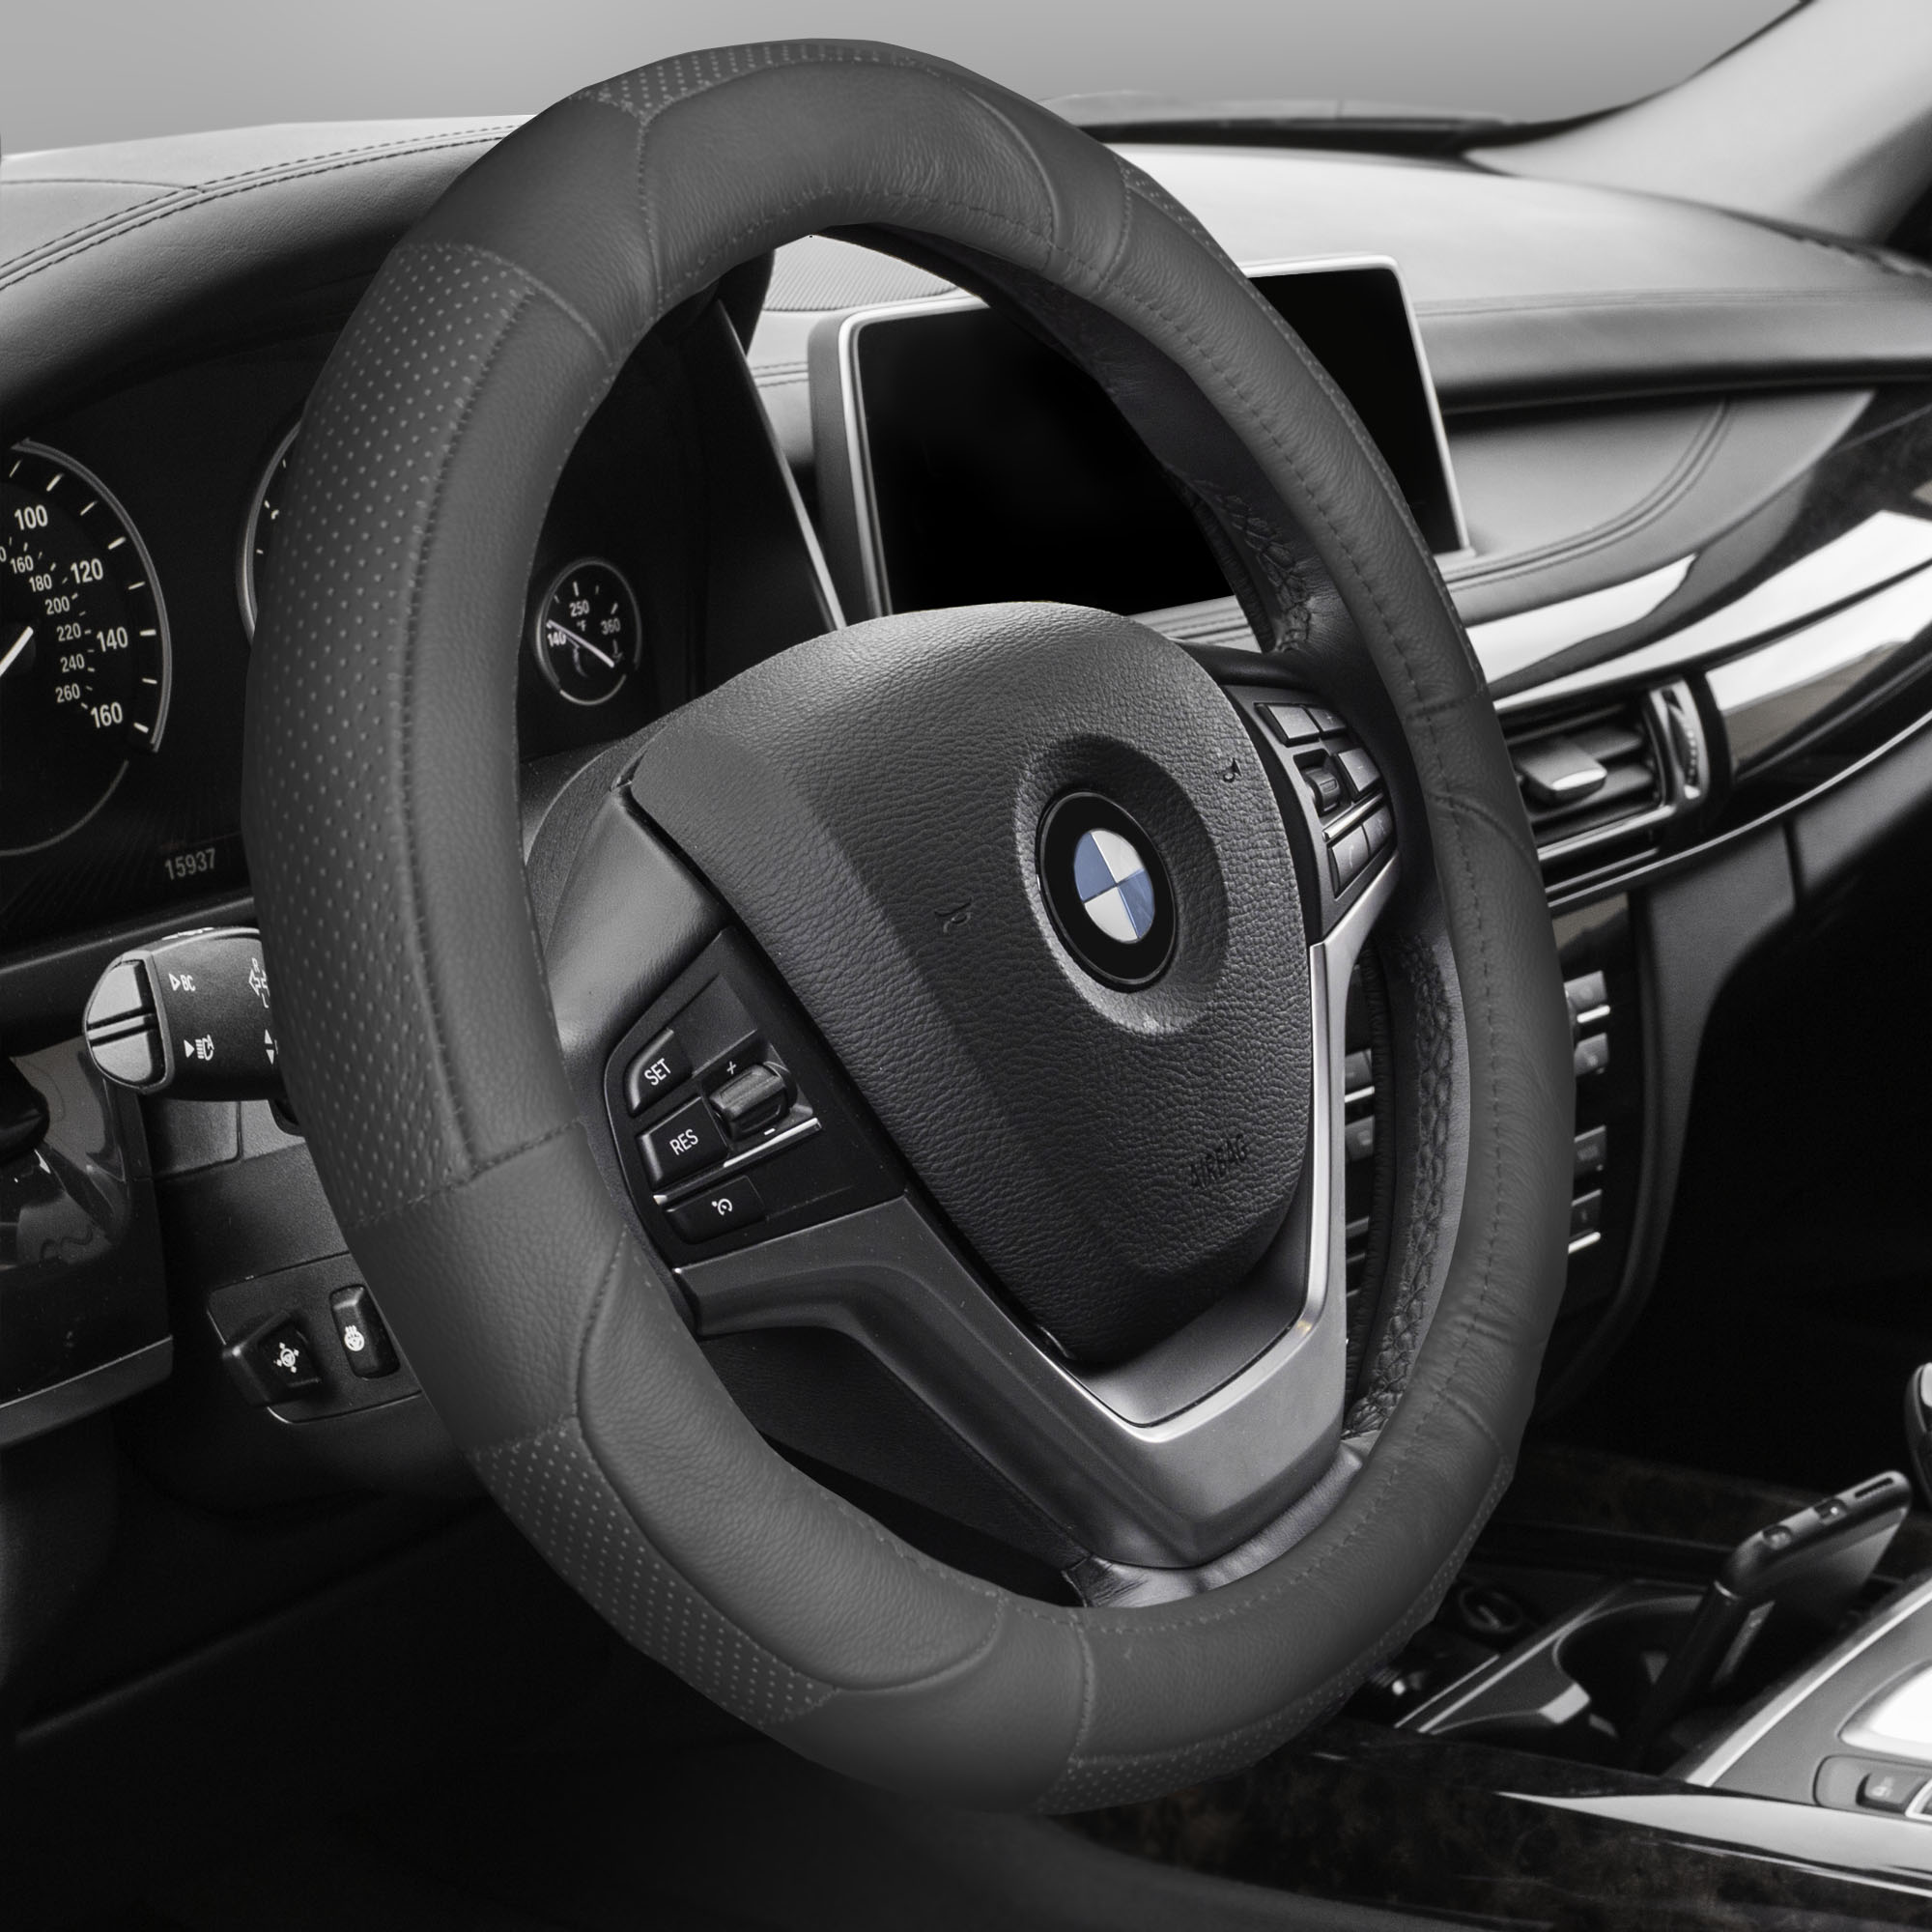 FH GROUP Premium Genuine Full Grain Leather Steering Wheel Cover, Solid Gray